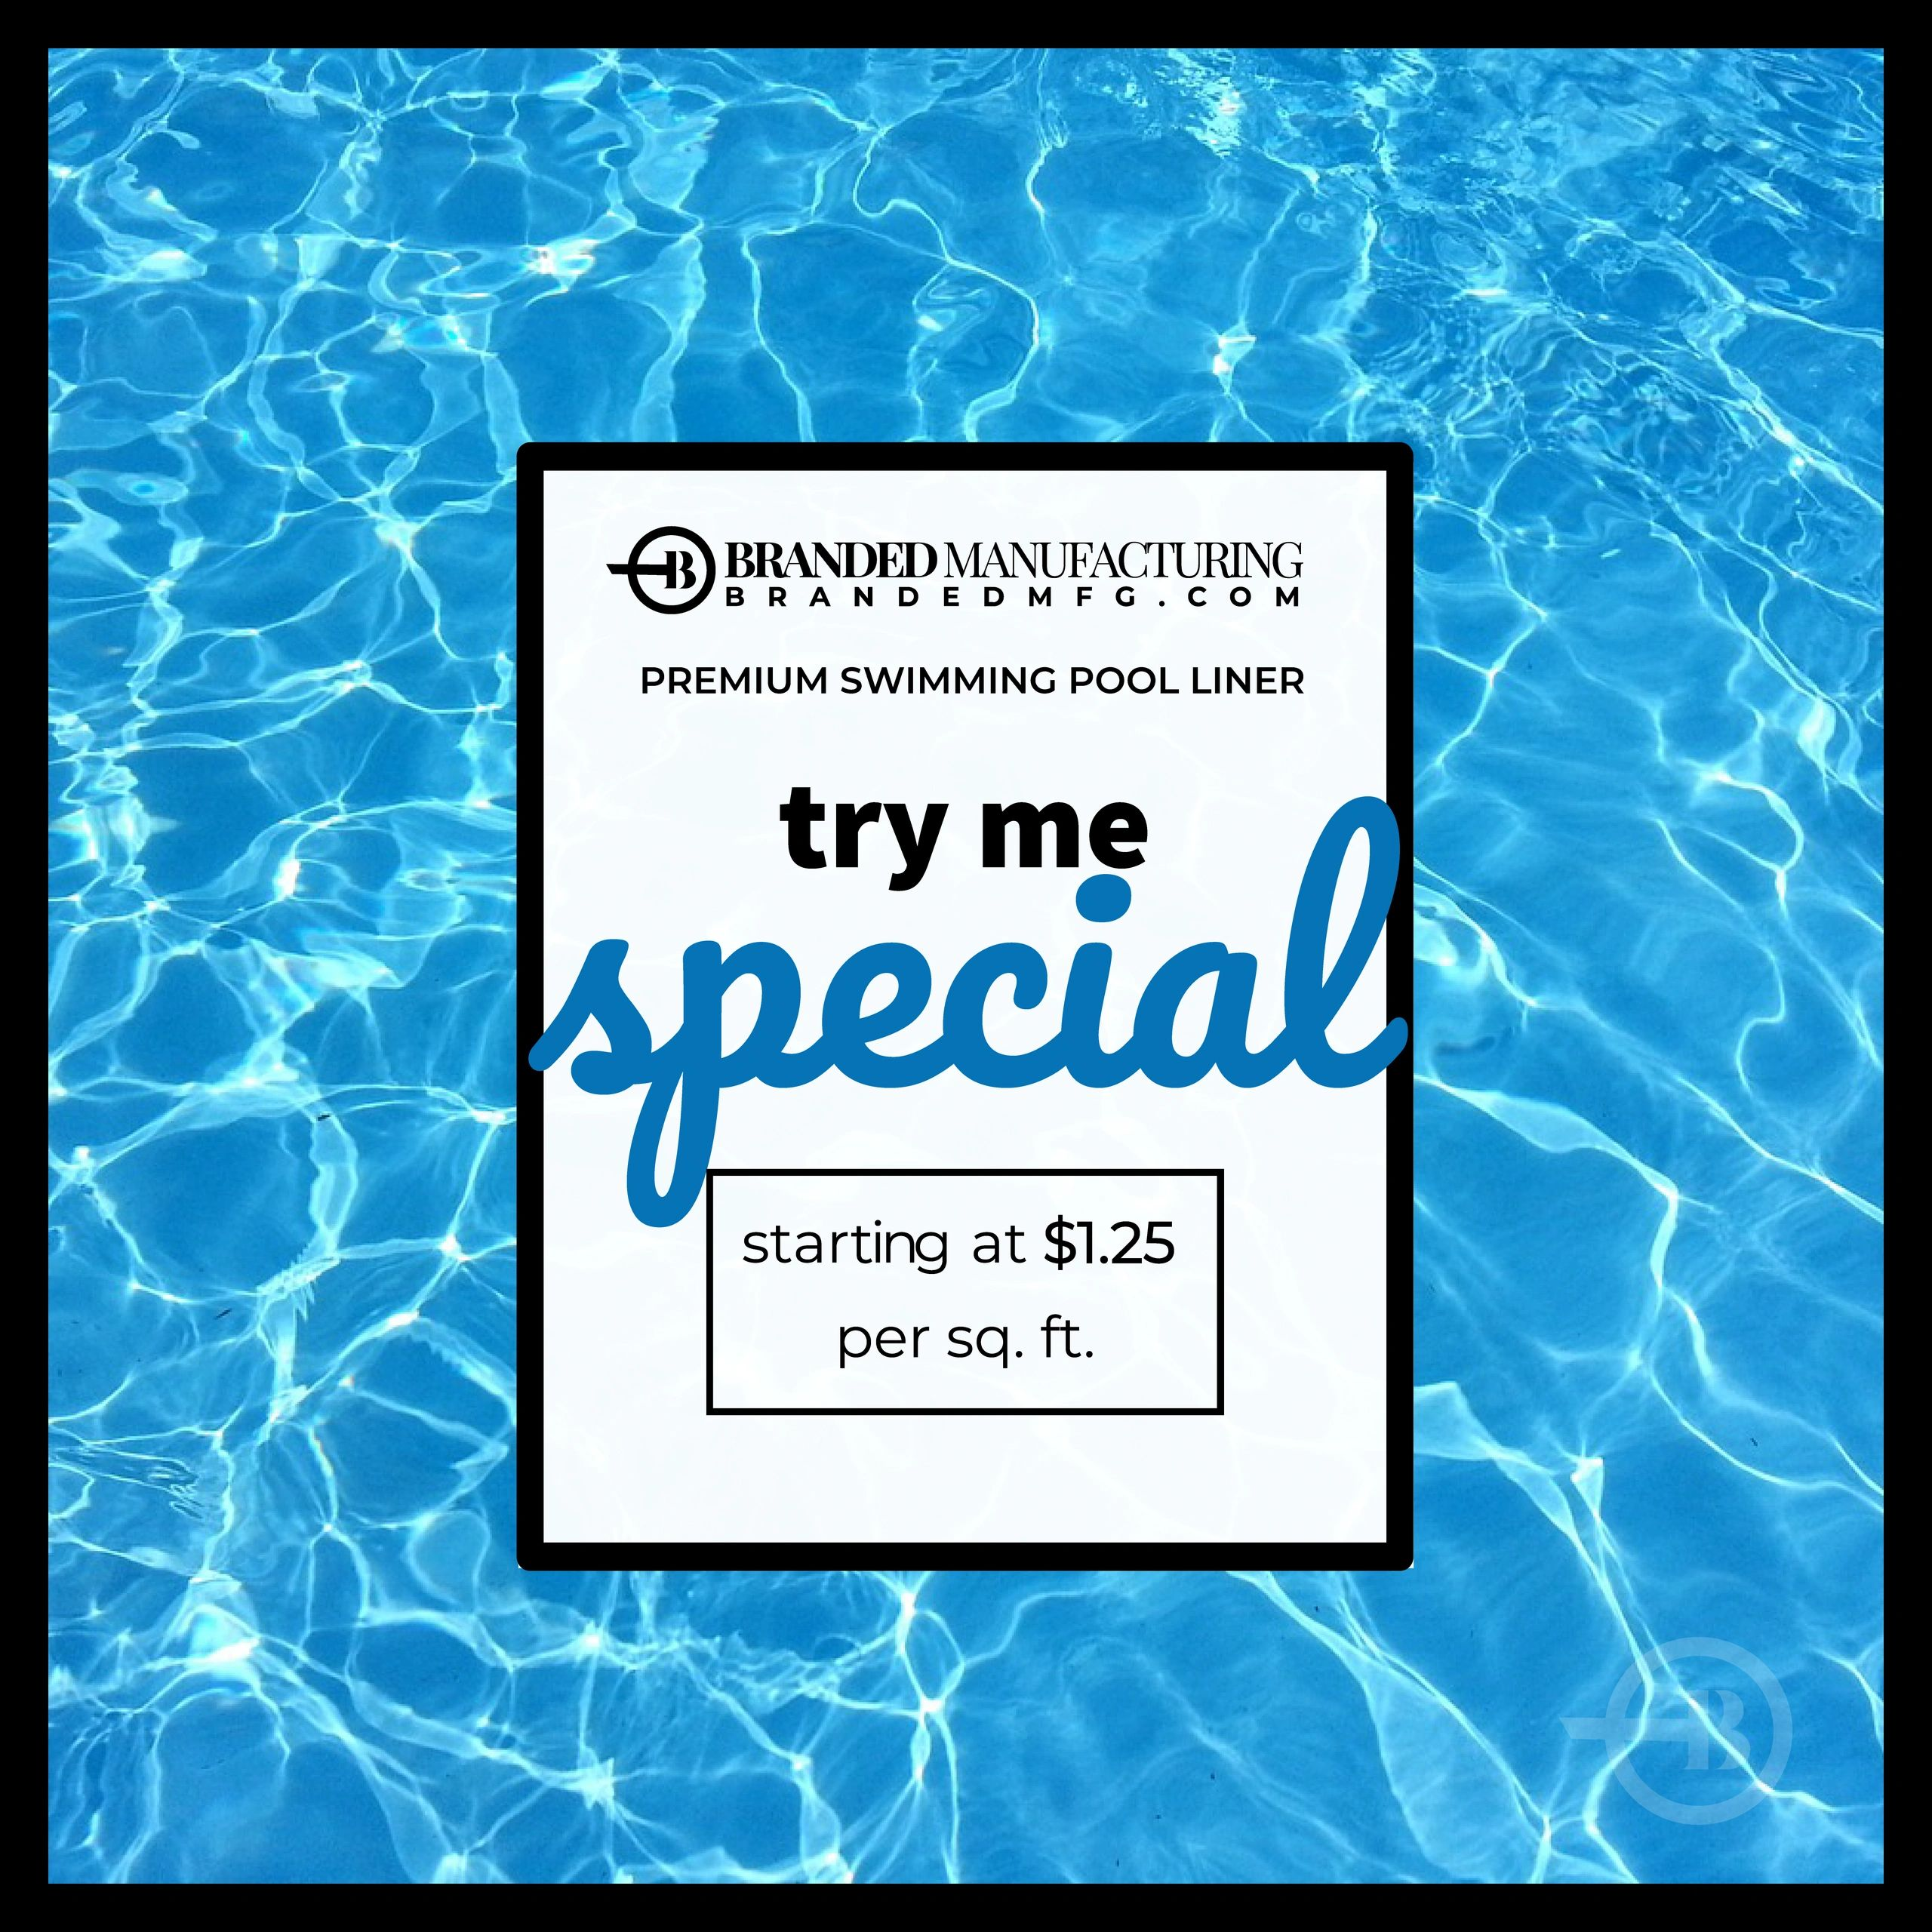 Swimming Pool Liner Try Me Prices Perfect for Pool Season